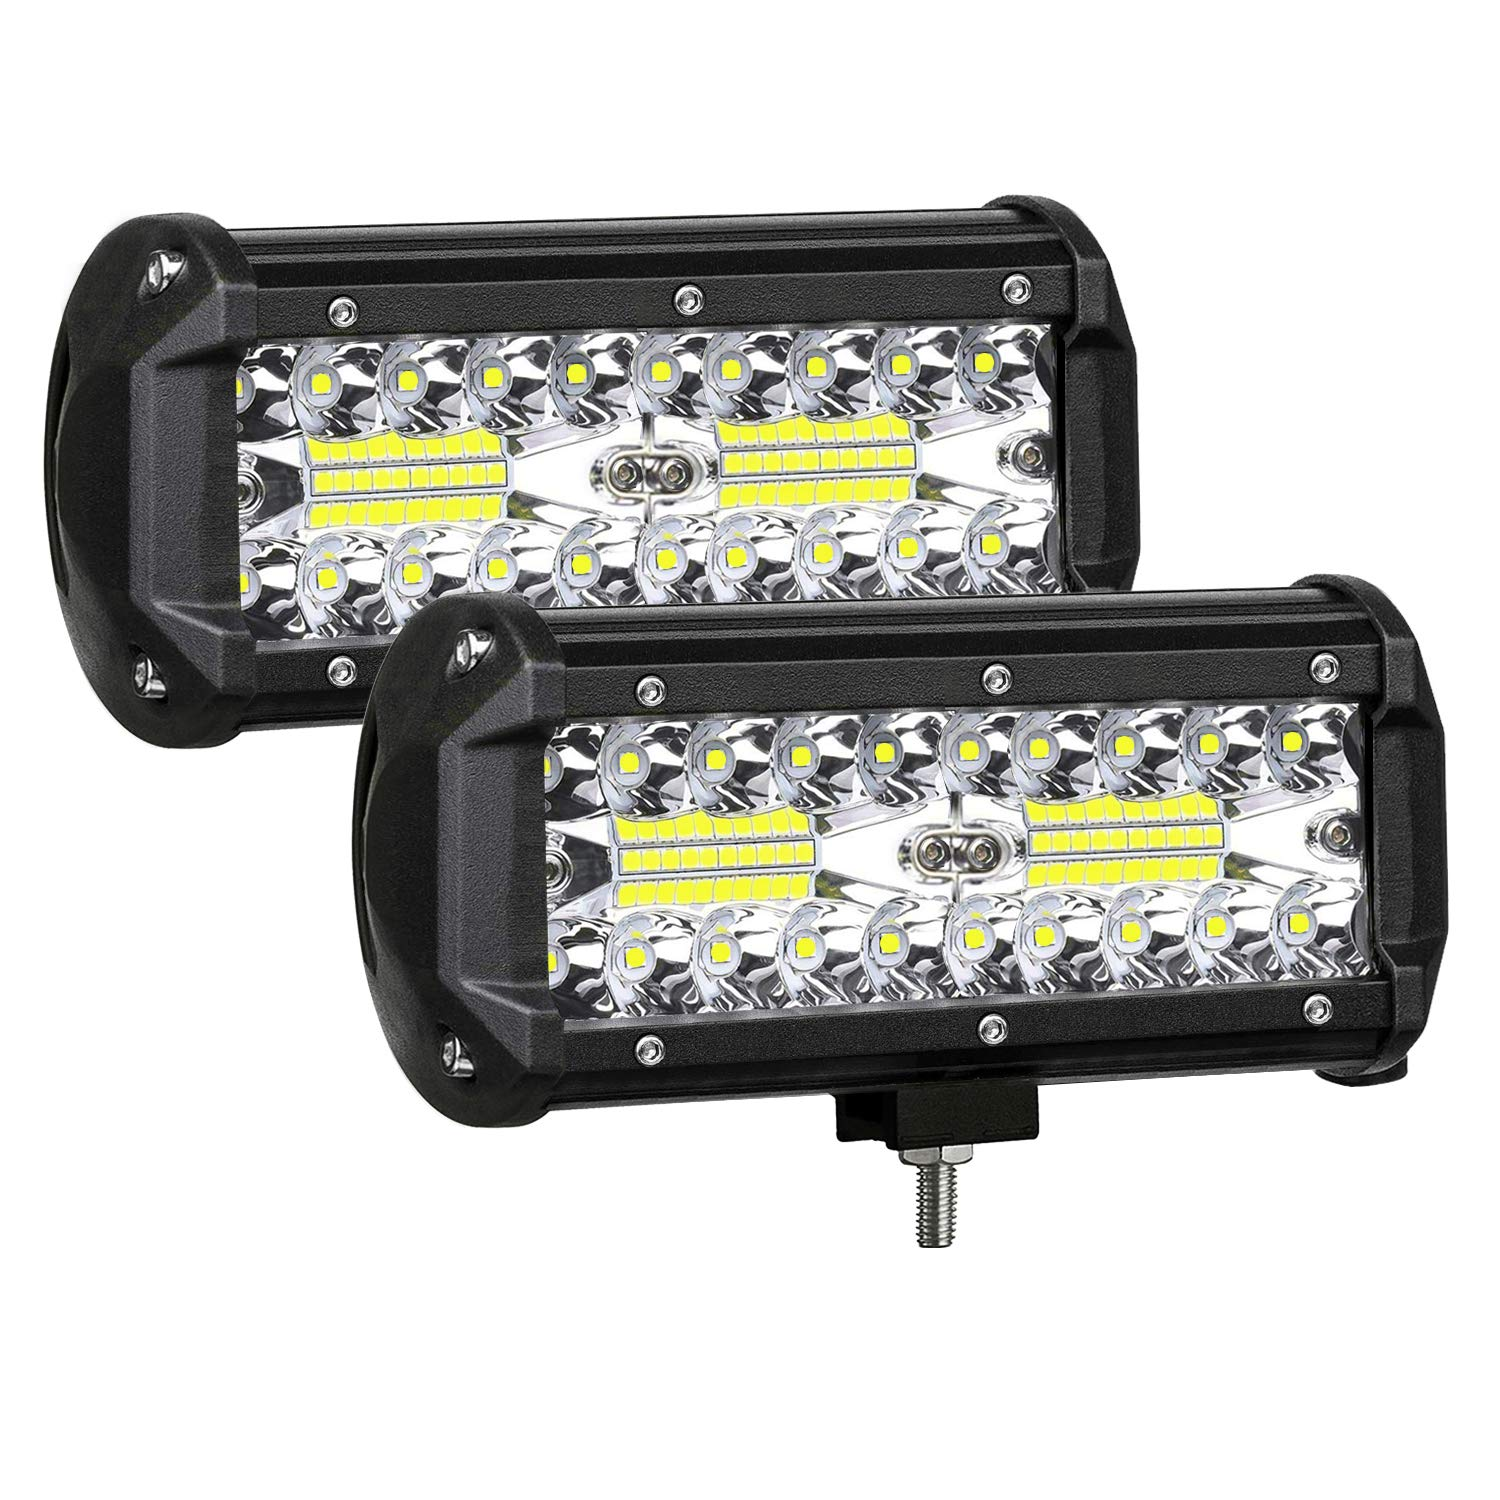 "AUZKIN- 7 "" LED Light Bar Submersible driving lights 240W 24000lm LED Pods Spot Flood Combo Beam Off Road lights"